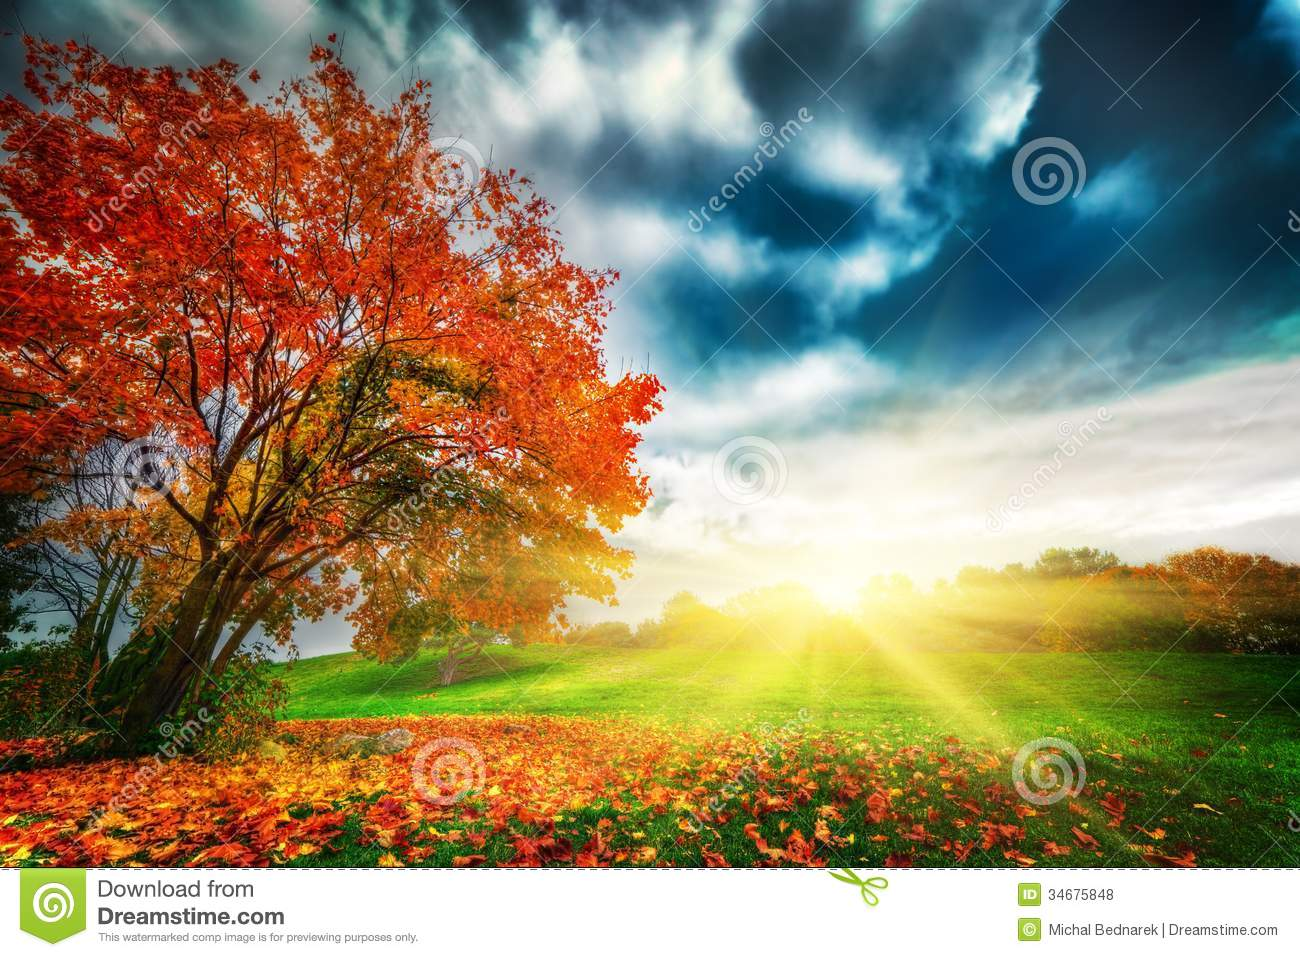 Autumn, Fall Landscape In Park Royalty Free Stock Photos - Image ...